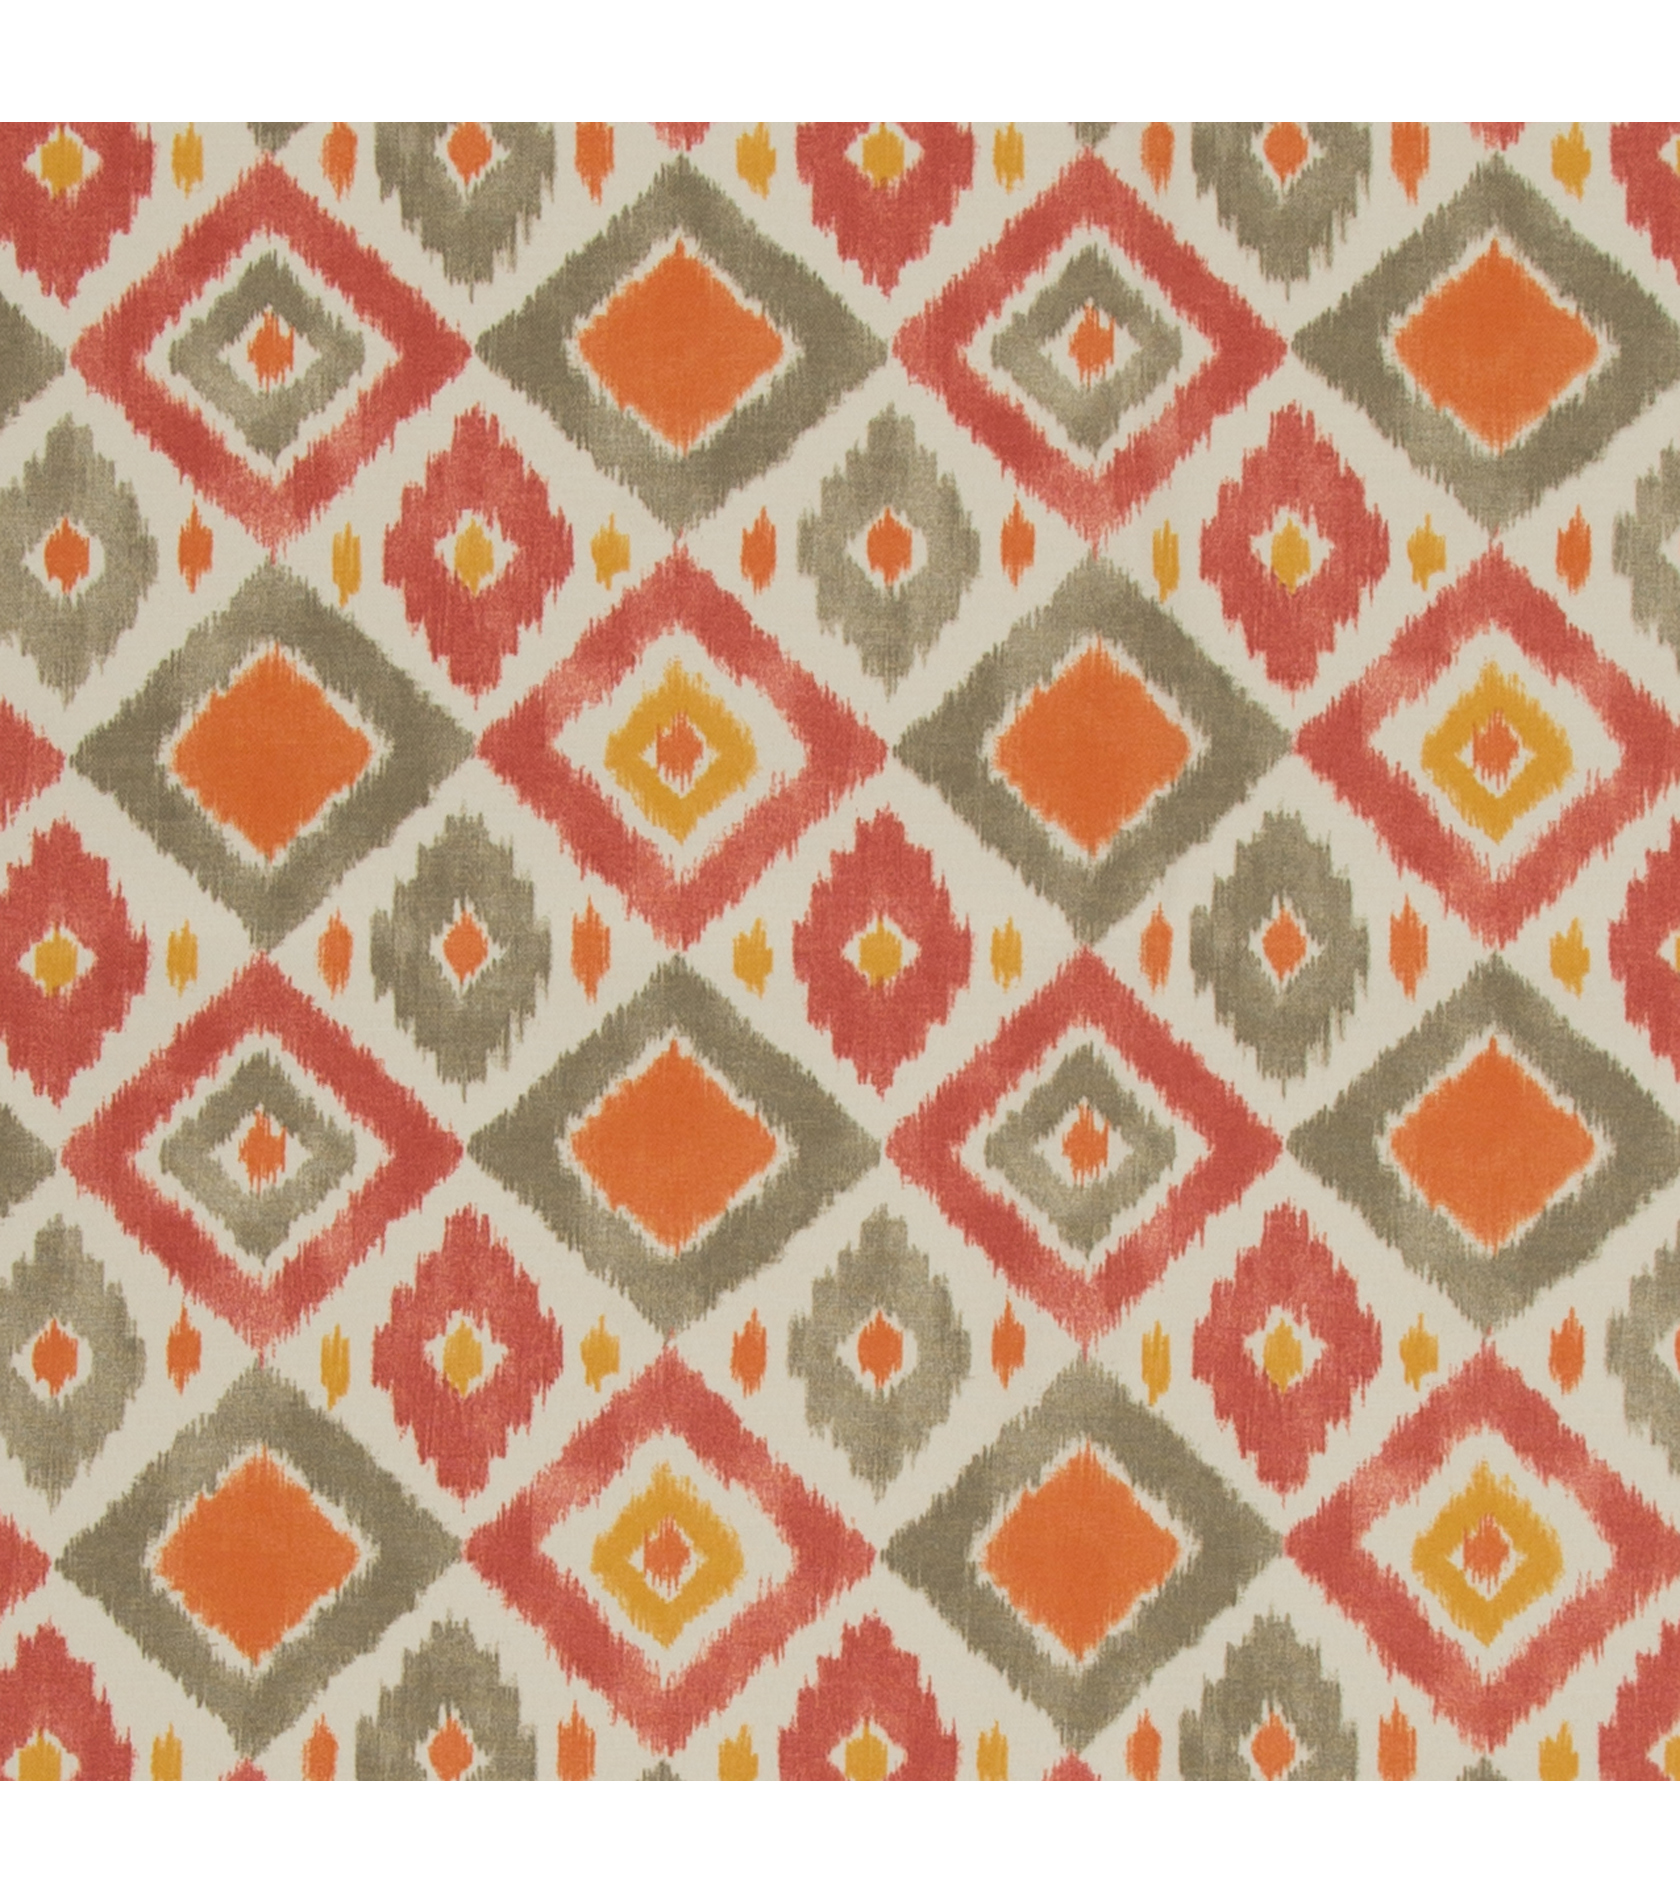 Outdoor Fabric-Thedra Fresco Desert Stone